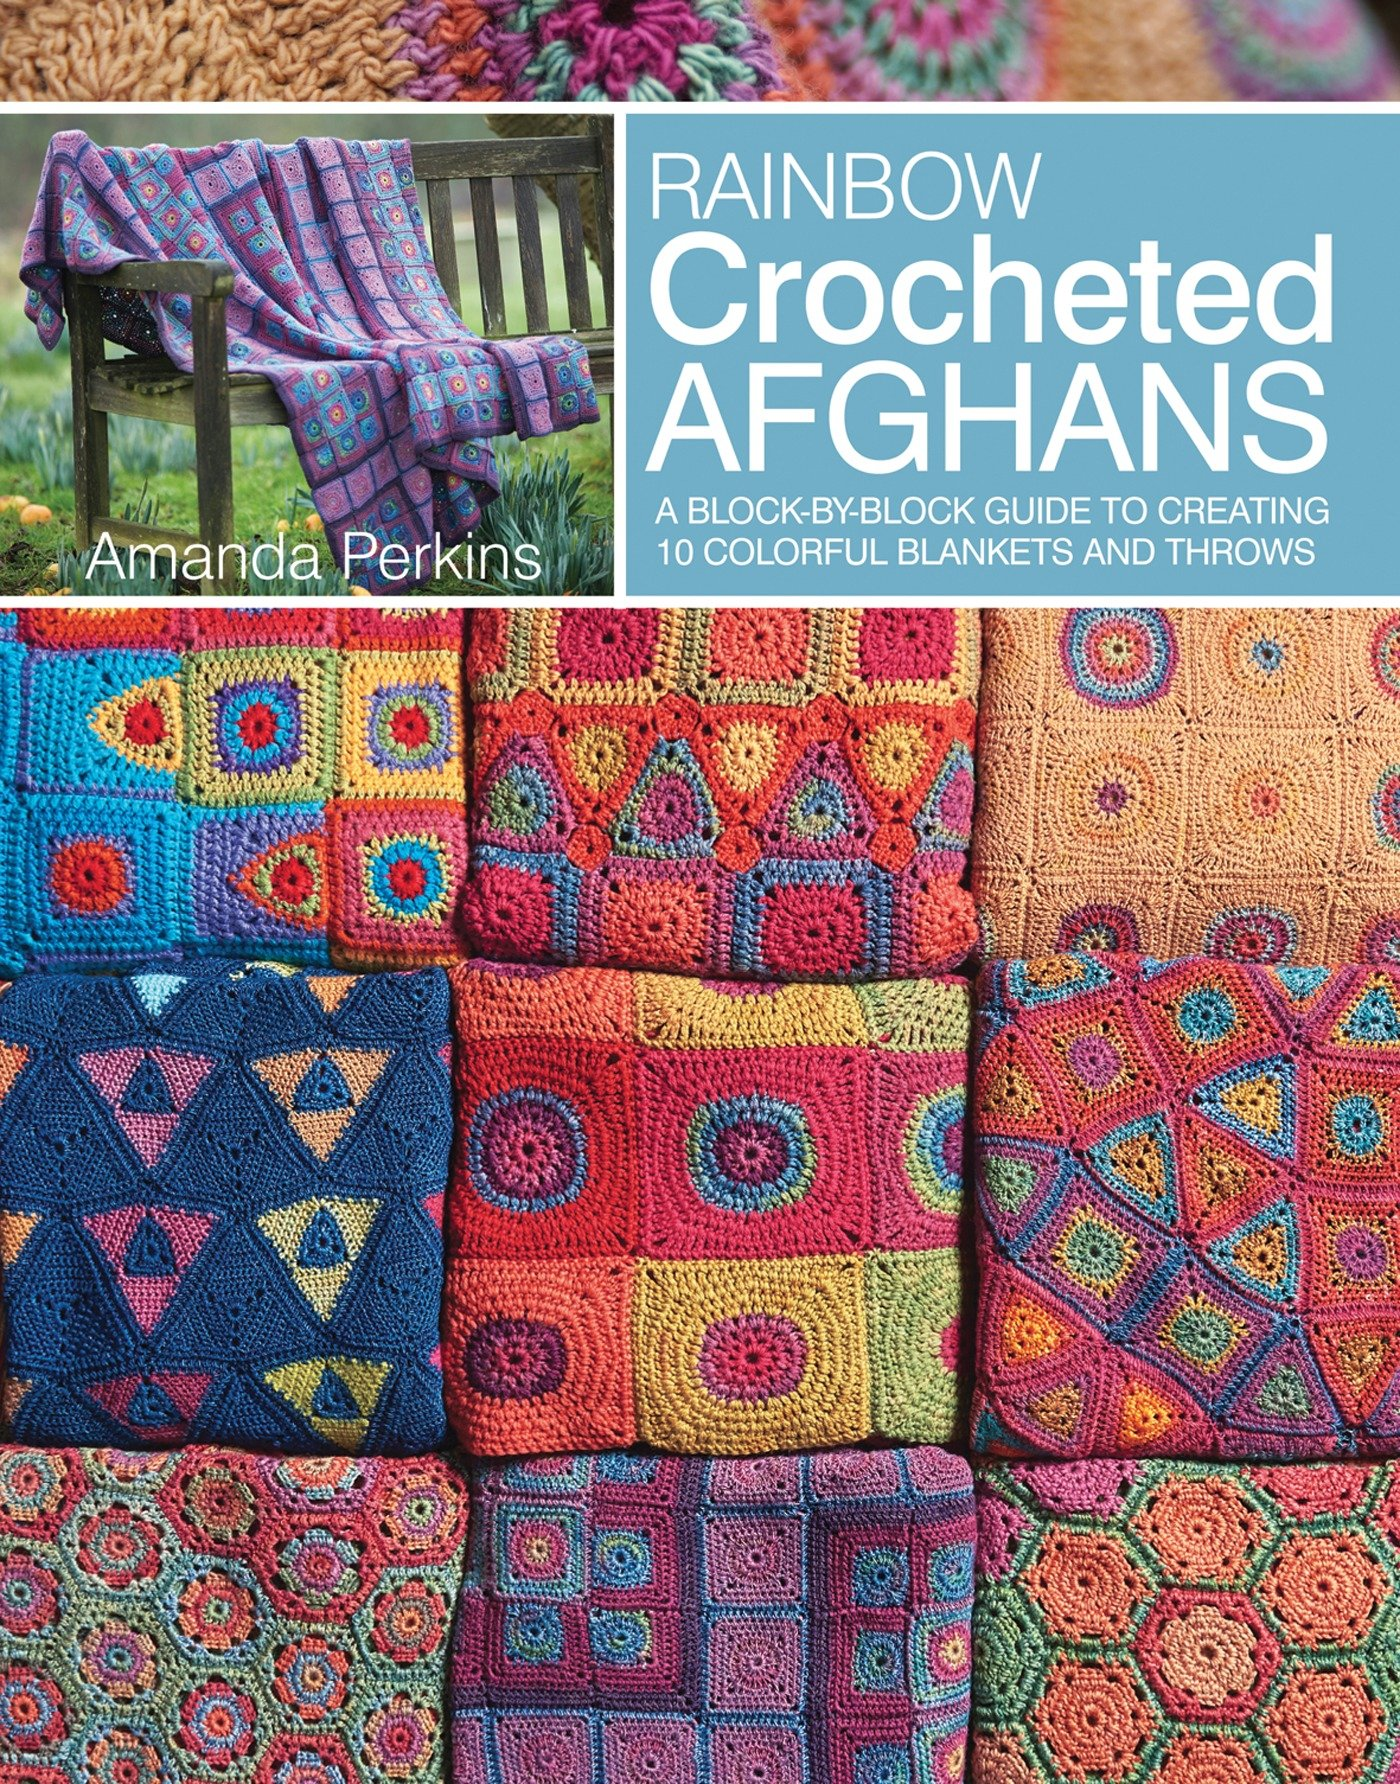 Rainbow Crocheted Afghans: A block-by-block guide to creating 10 colorful blankets and throws